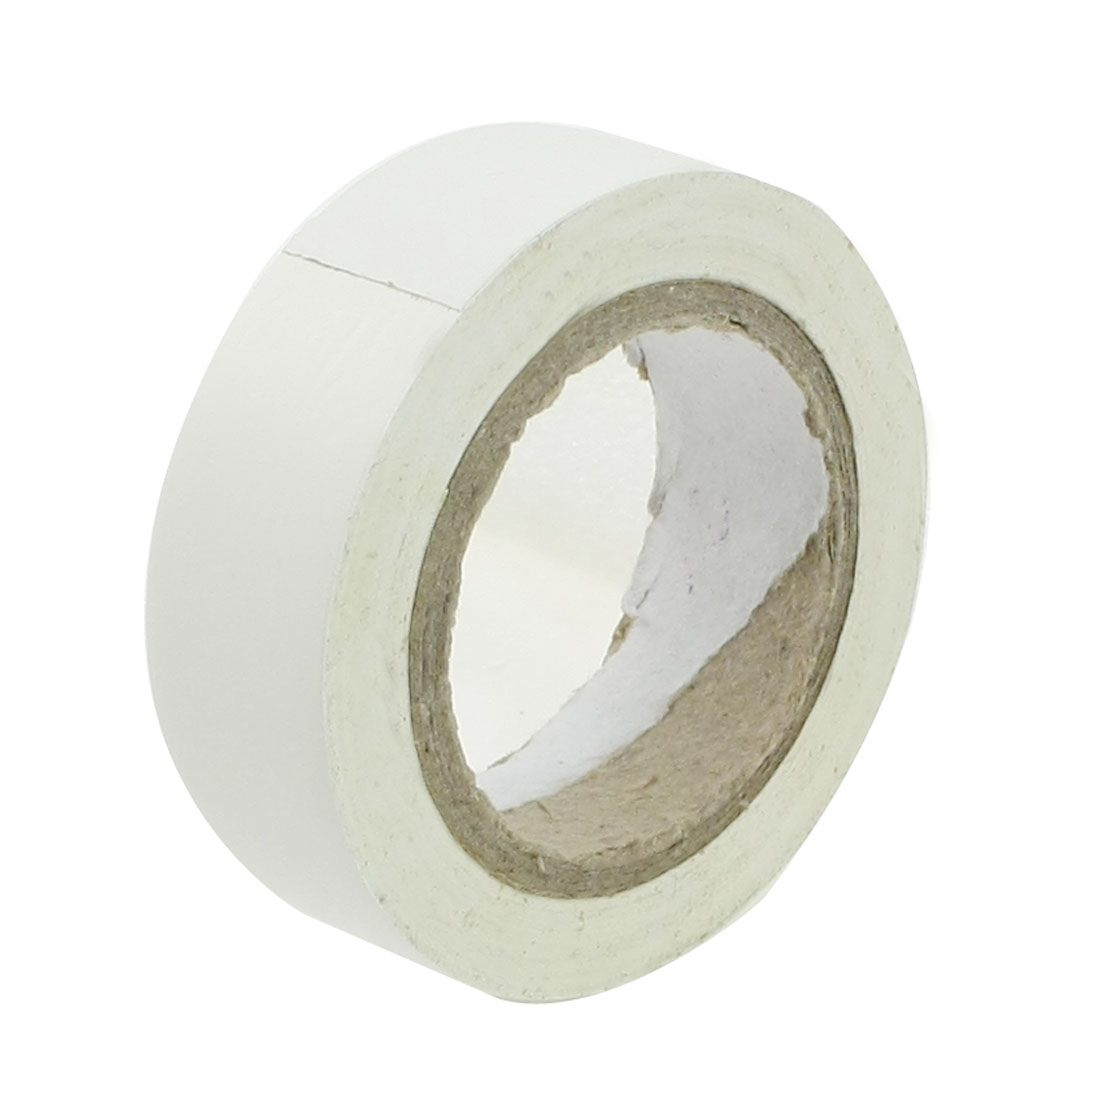 17mm Width 10 Meter Length Insulation Adhesive Electrical Tape